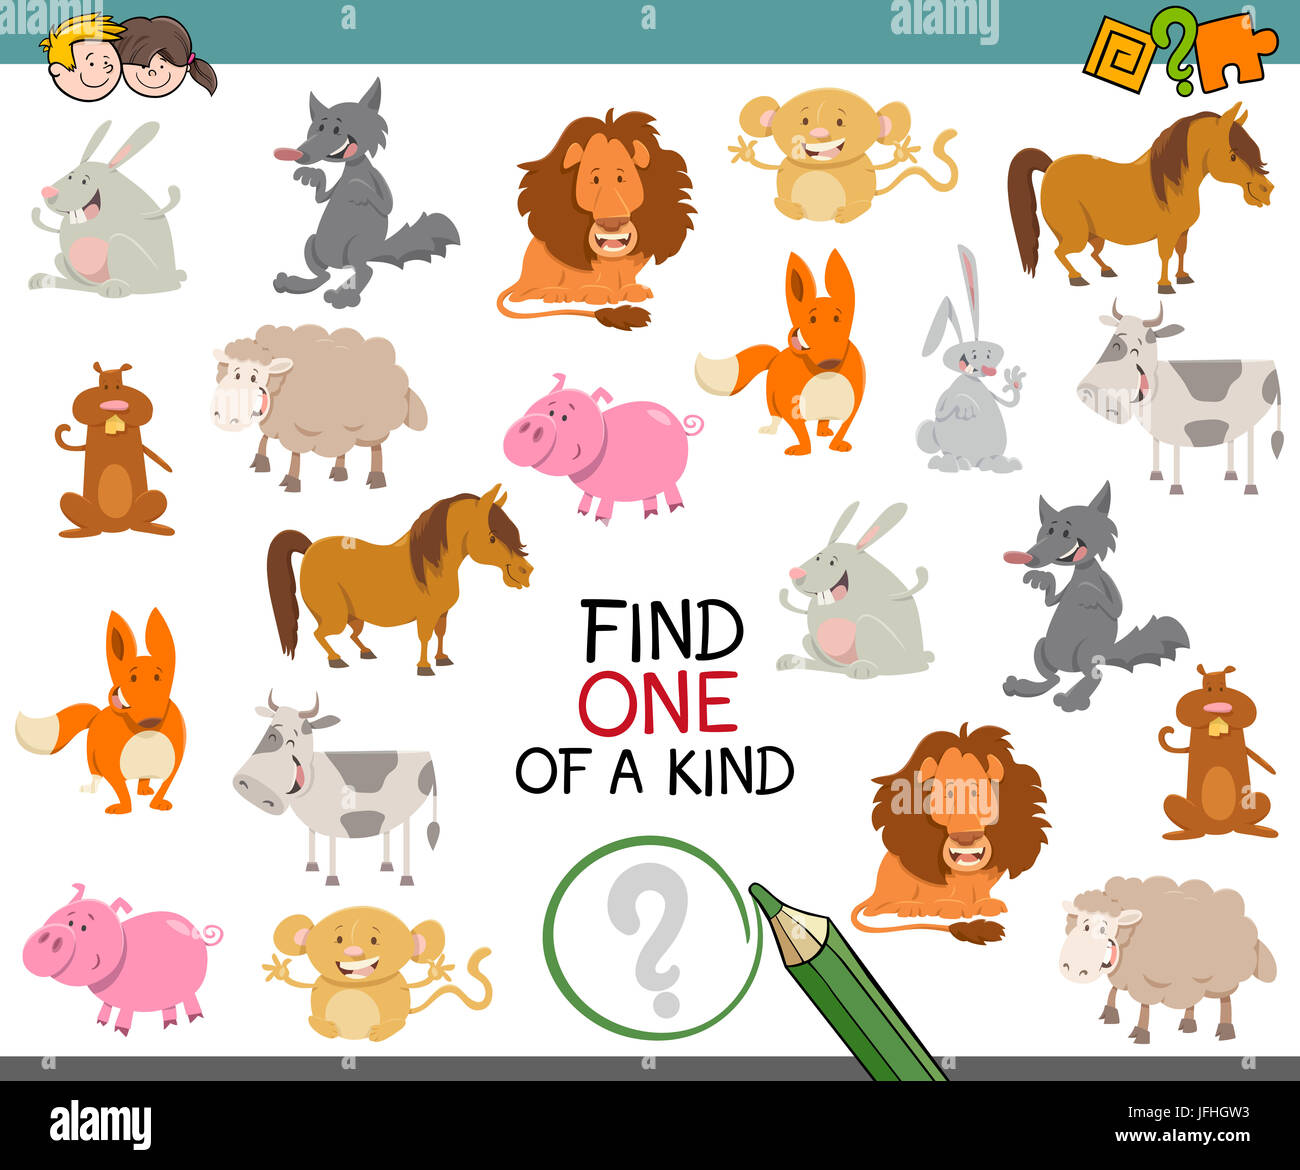 one of a kind with animals Stock Photo